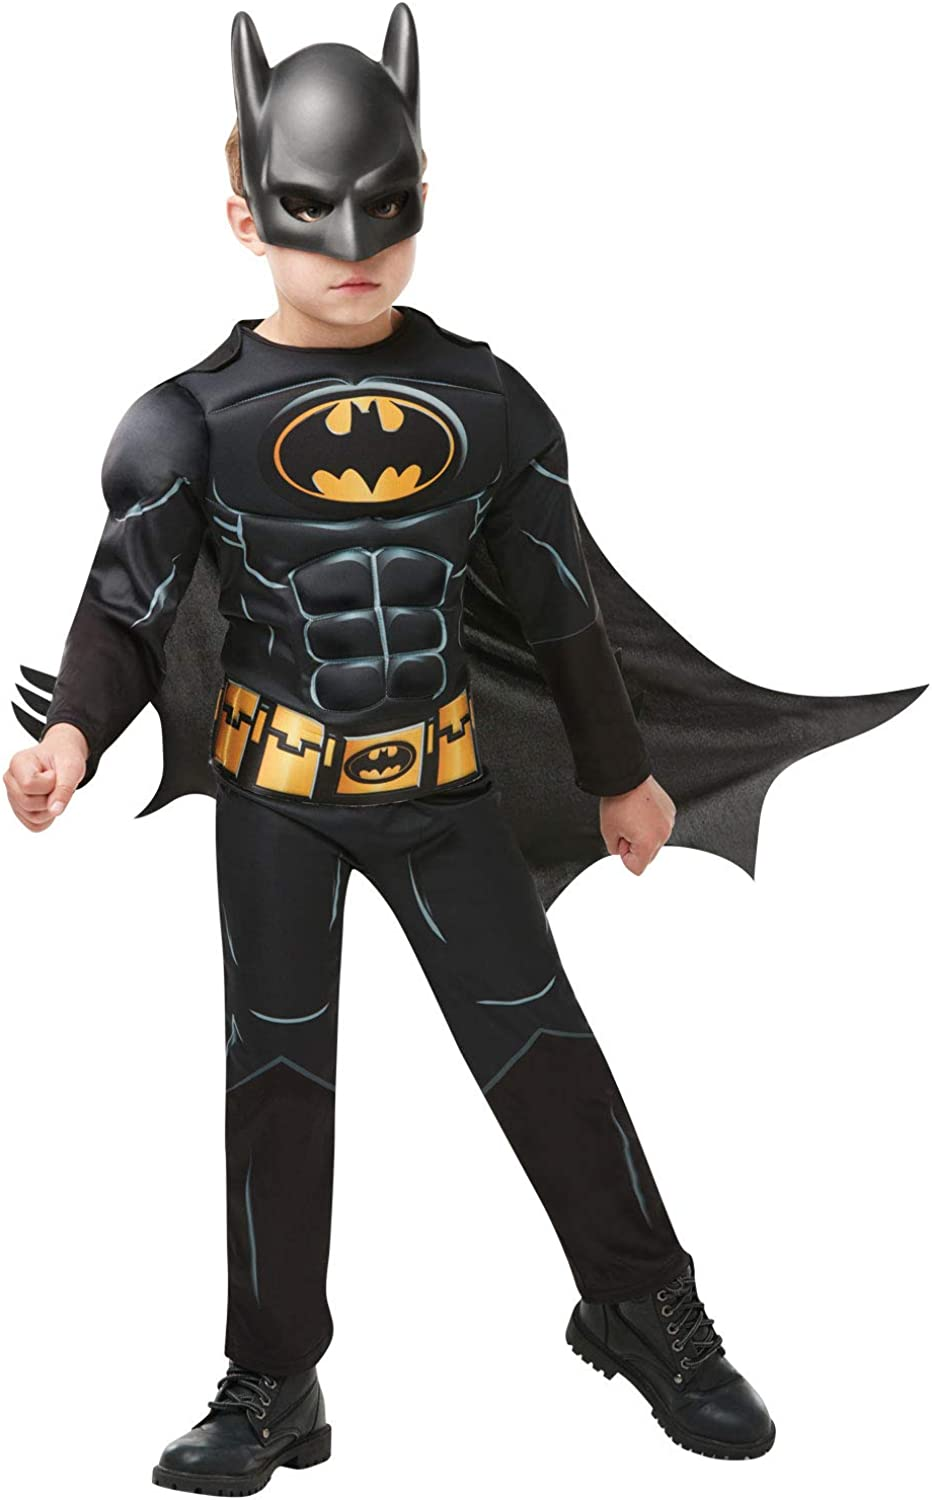 Rubie's High quality new Official Batman Black safety Costume Superhero Child's Deluxe